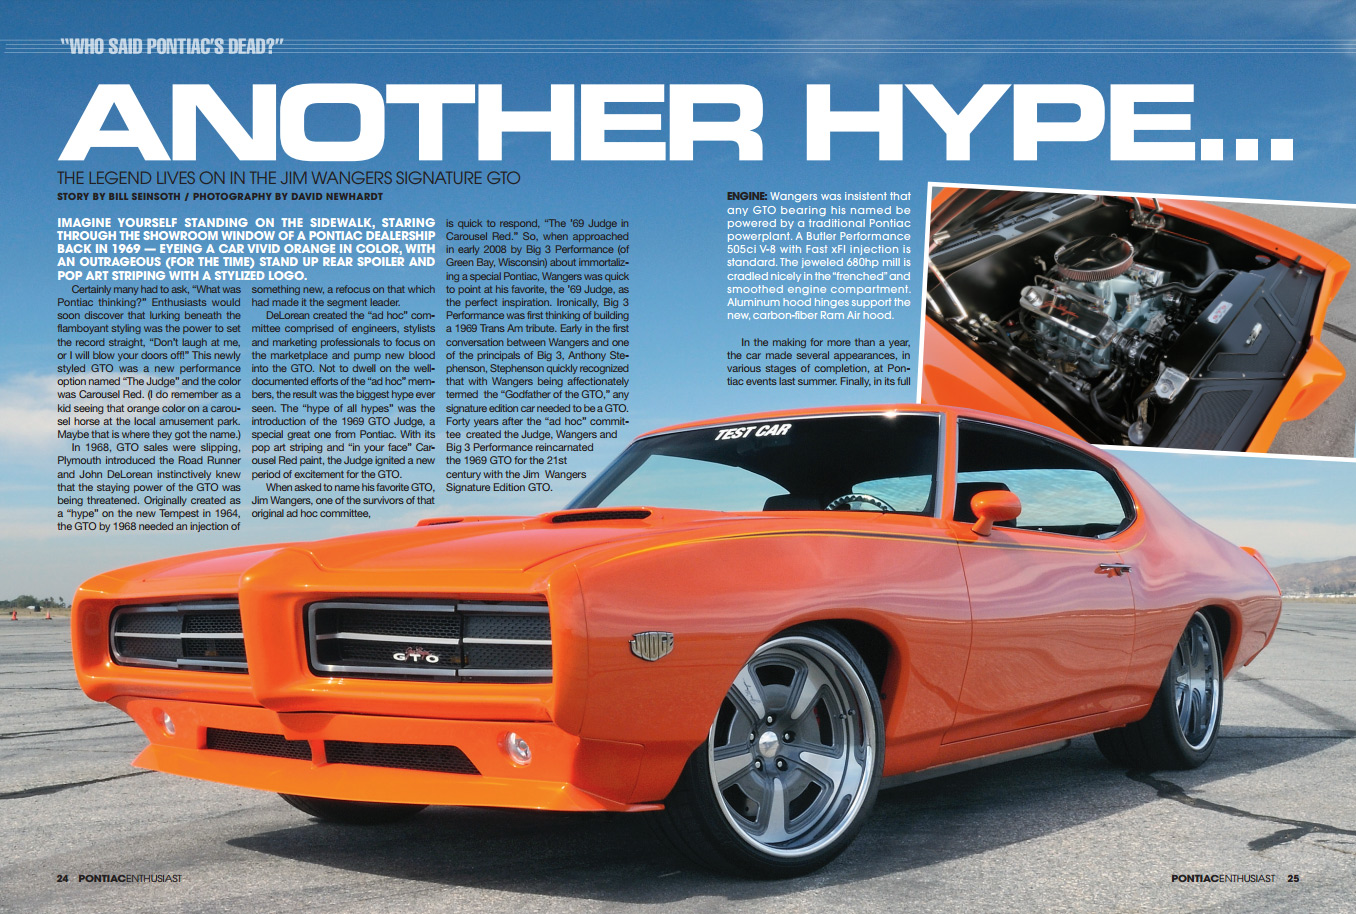 1970 Pontiac Firebird Transam Gave It The Power To Match Its Sleek